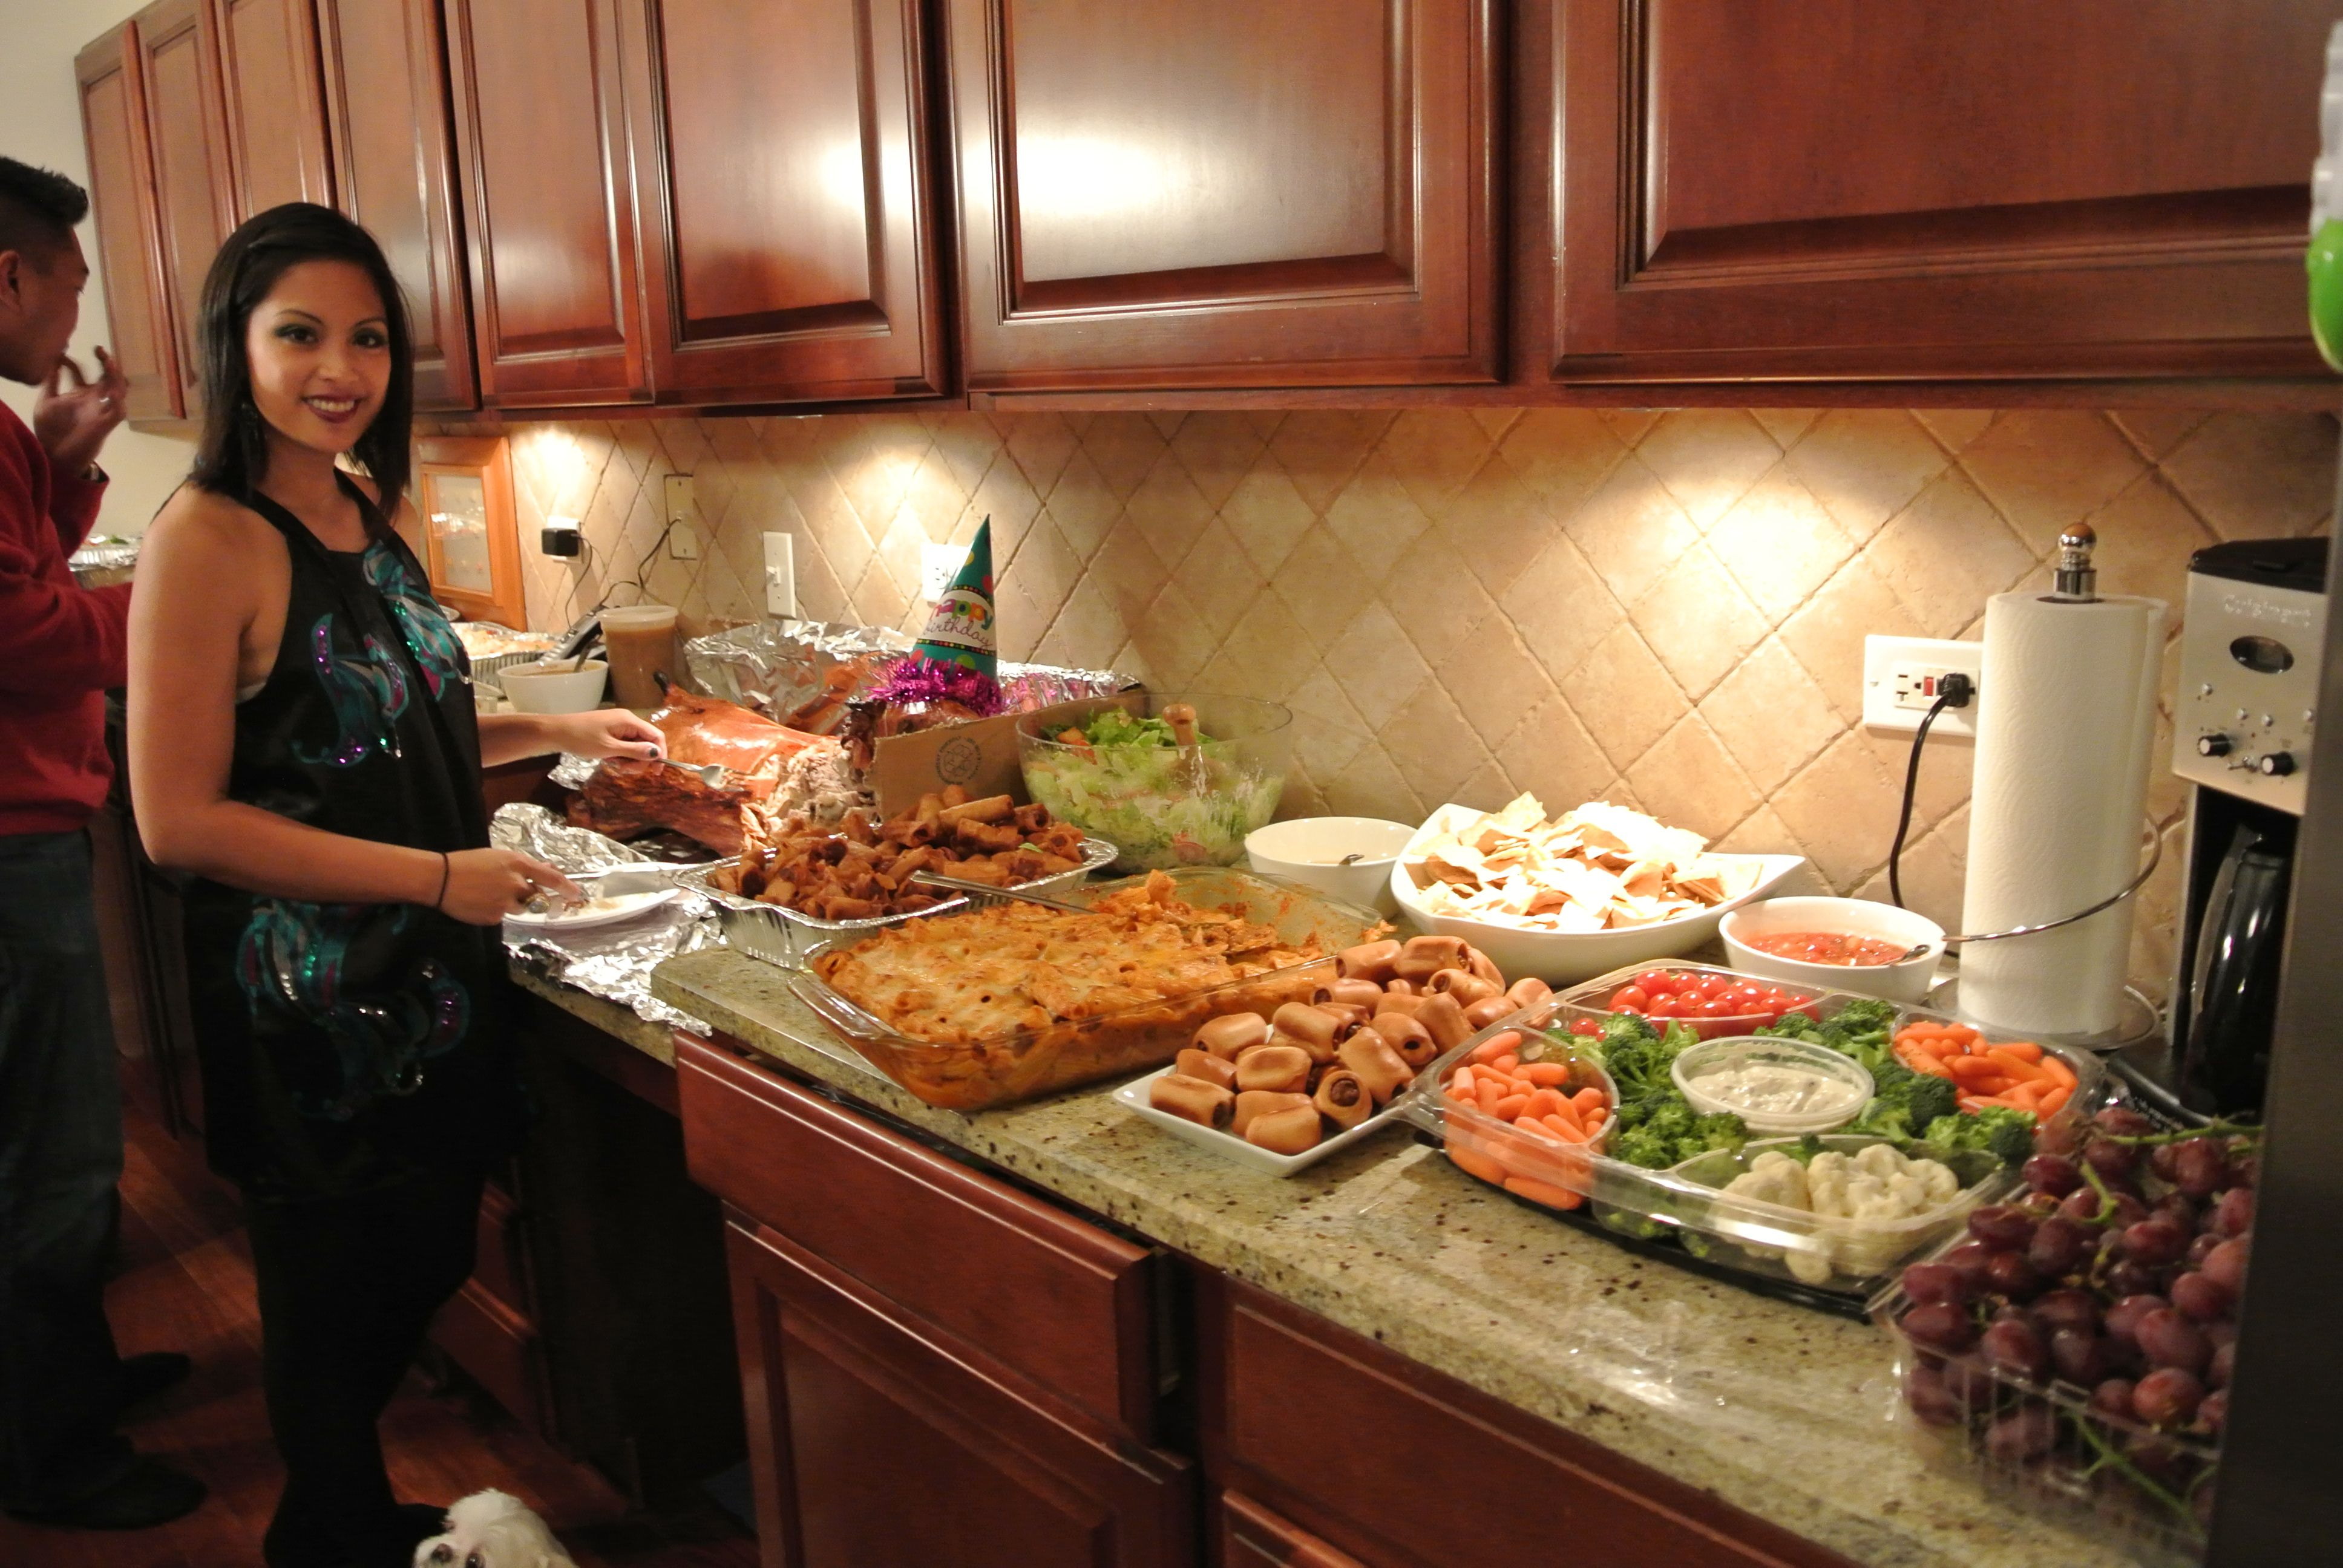 House Warming Party Decorations Extended kitchen